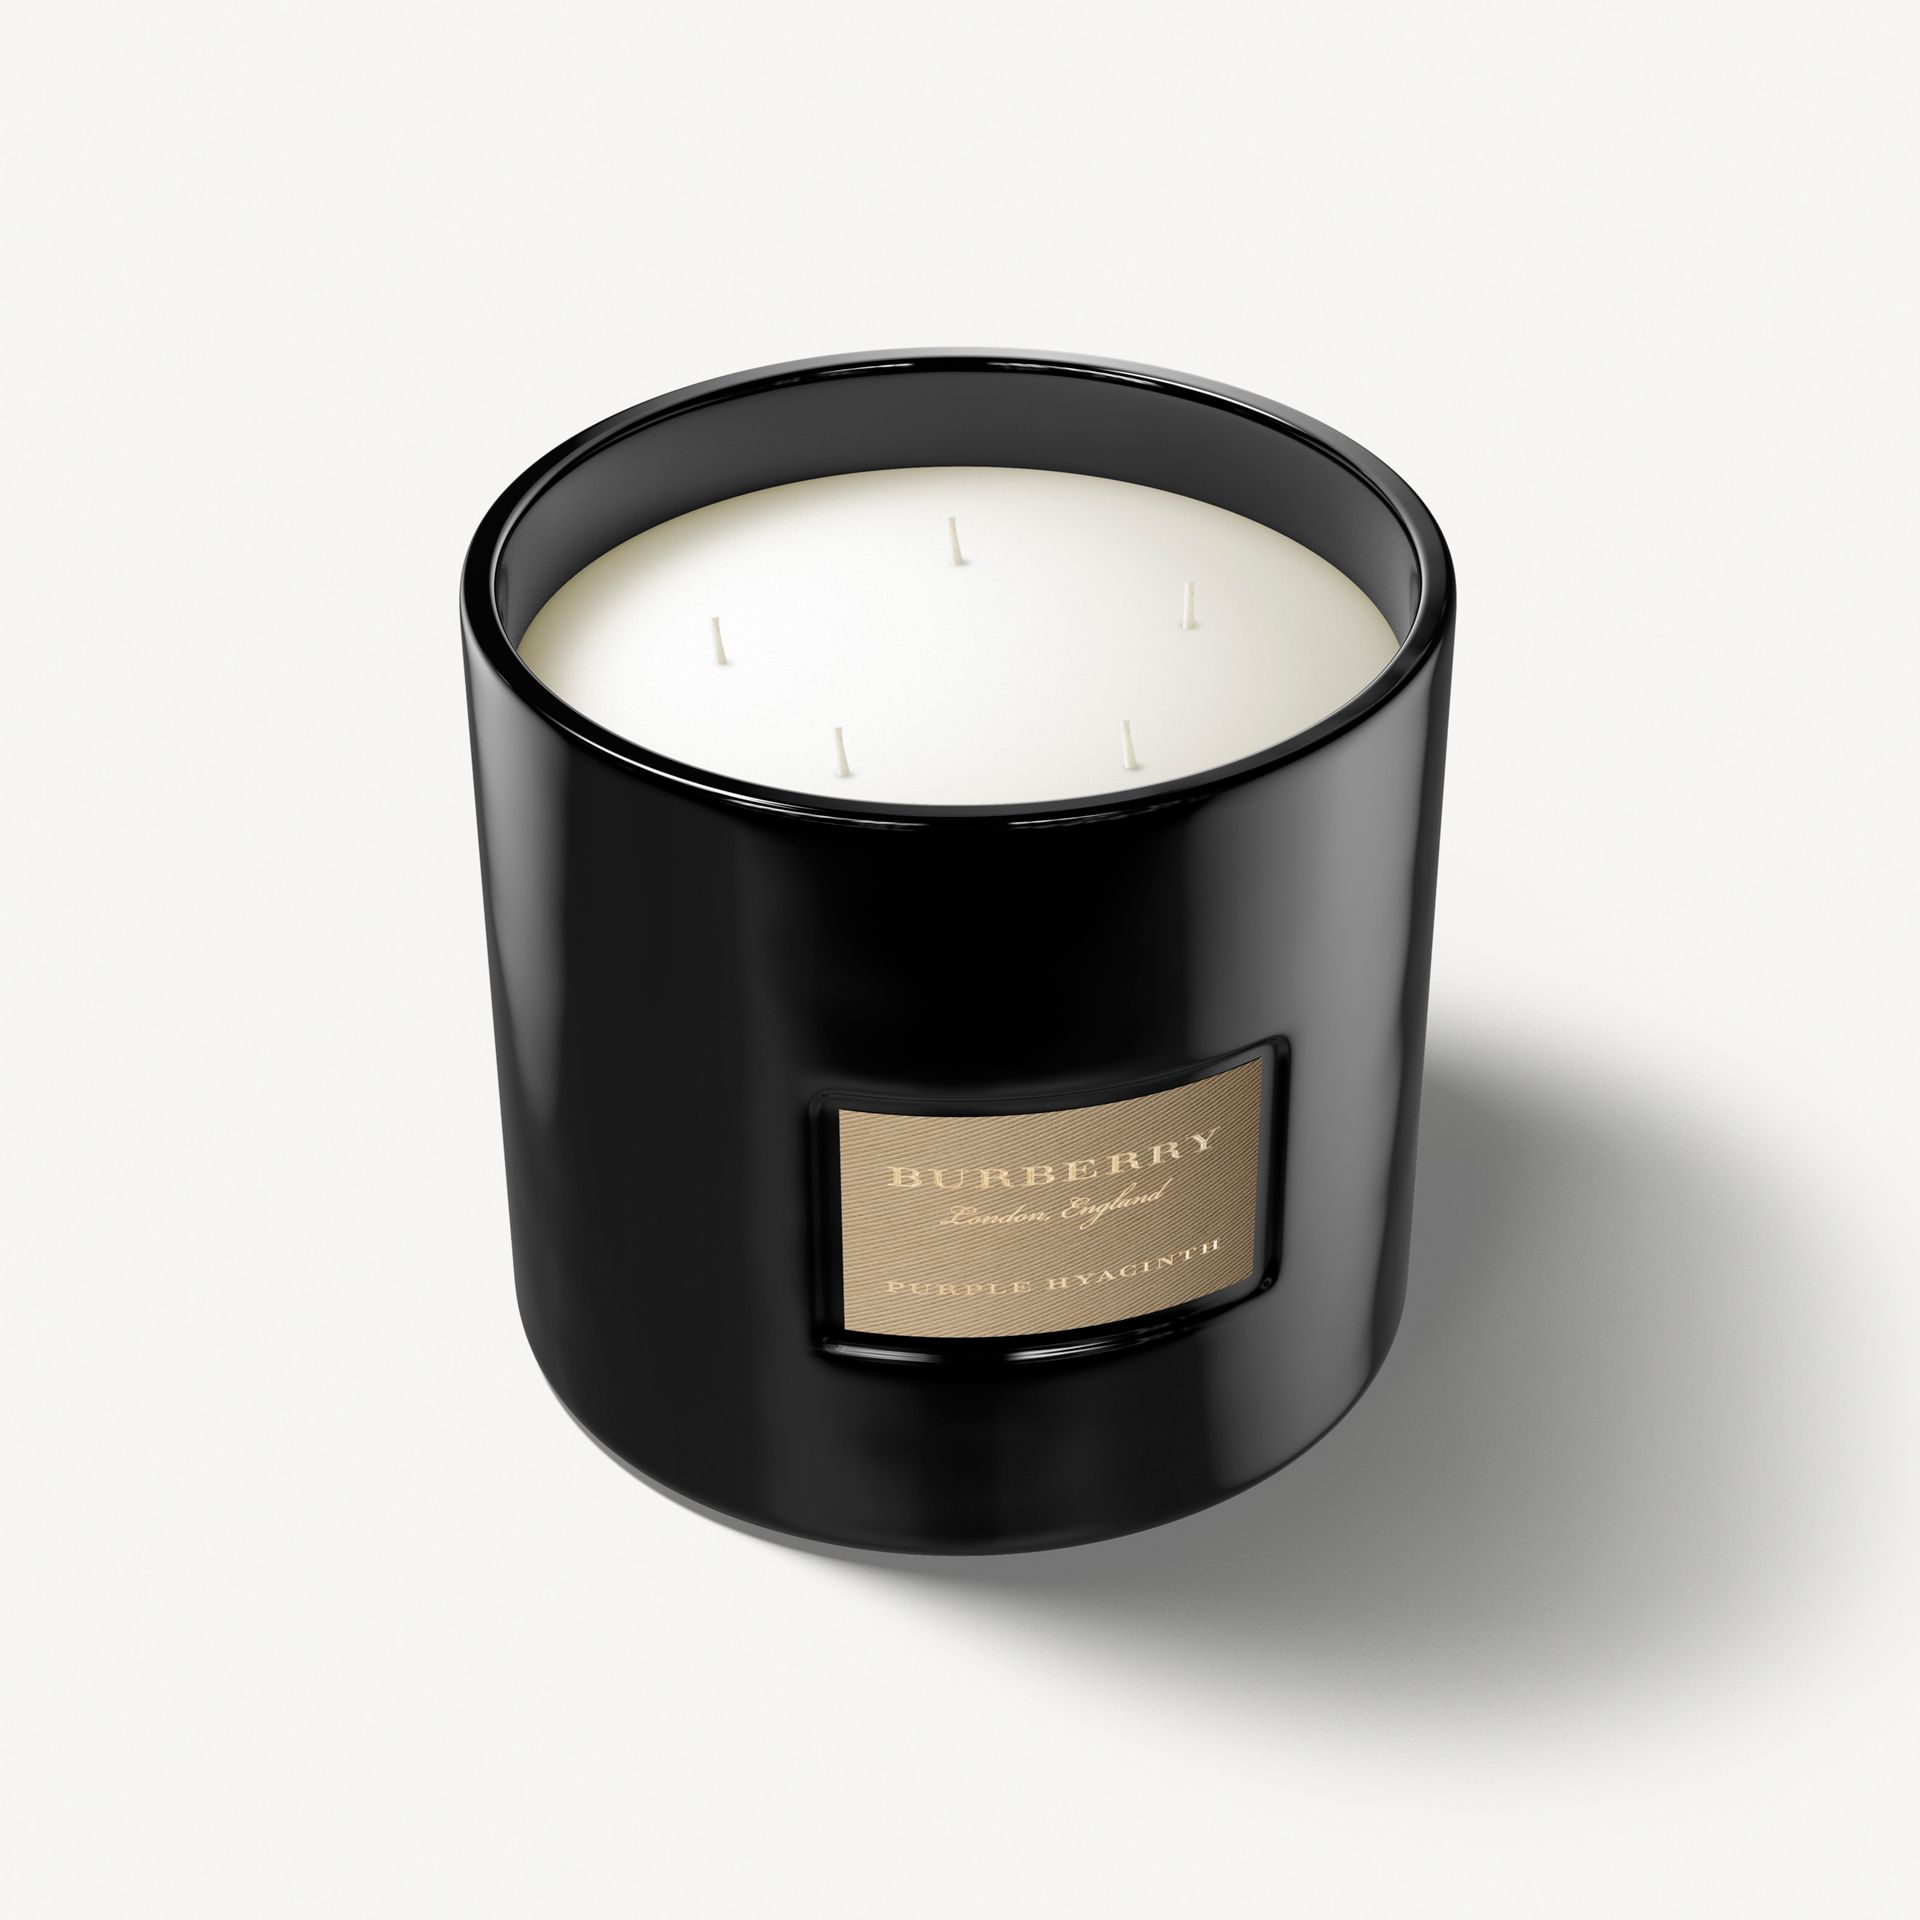 Purple Hyacinth Scented Candle – 2 kg | Burberry - Galerie-Bild 0